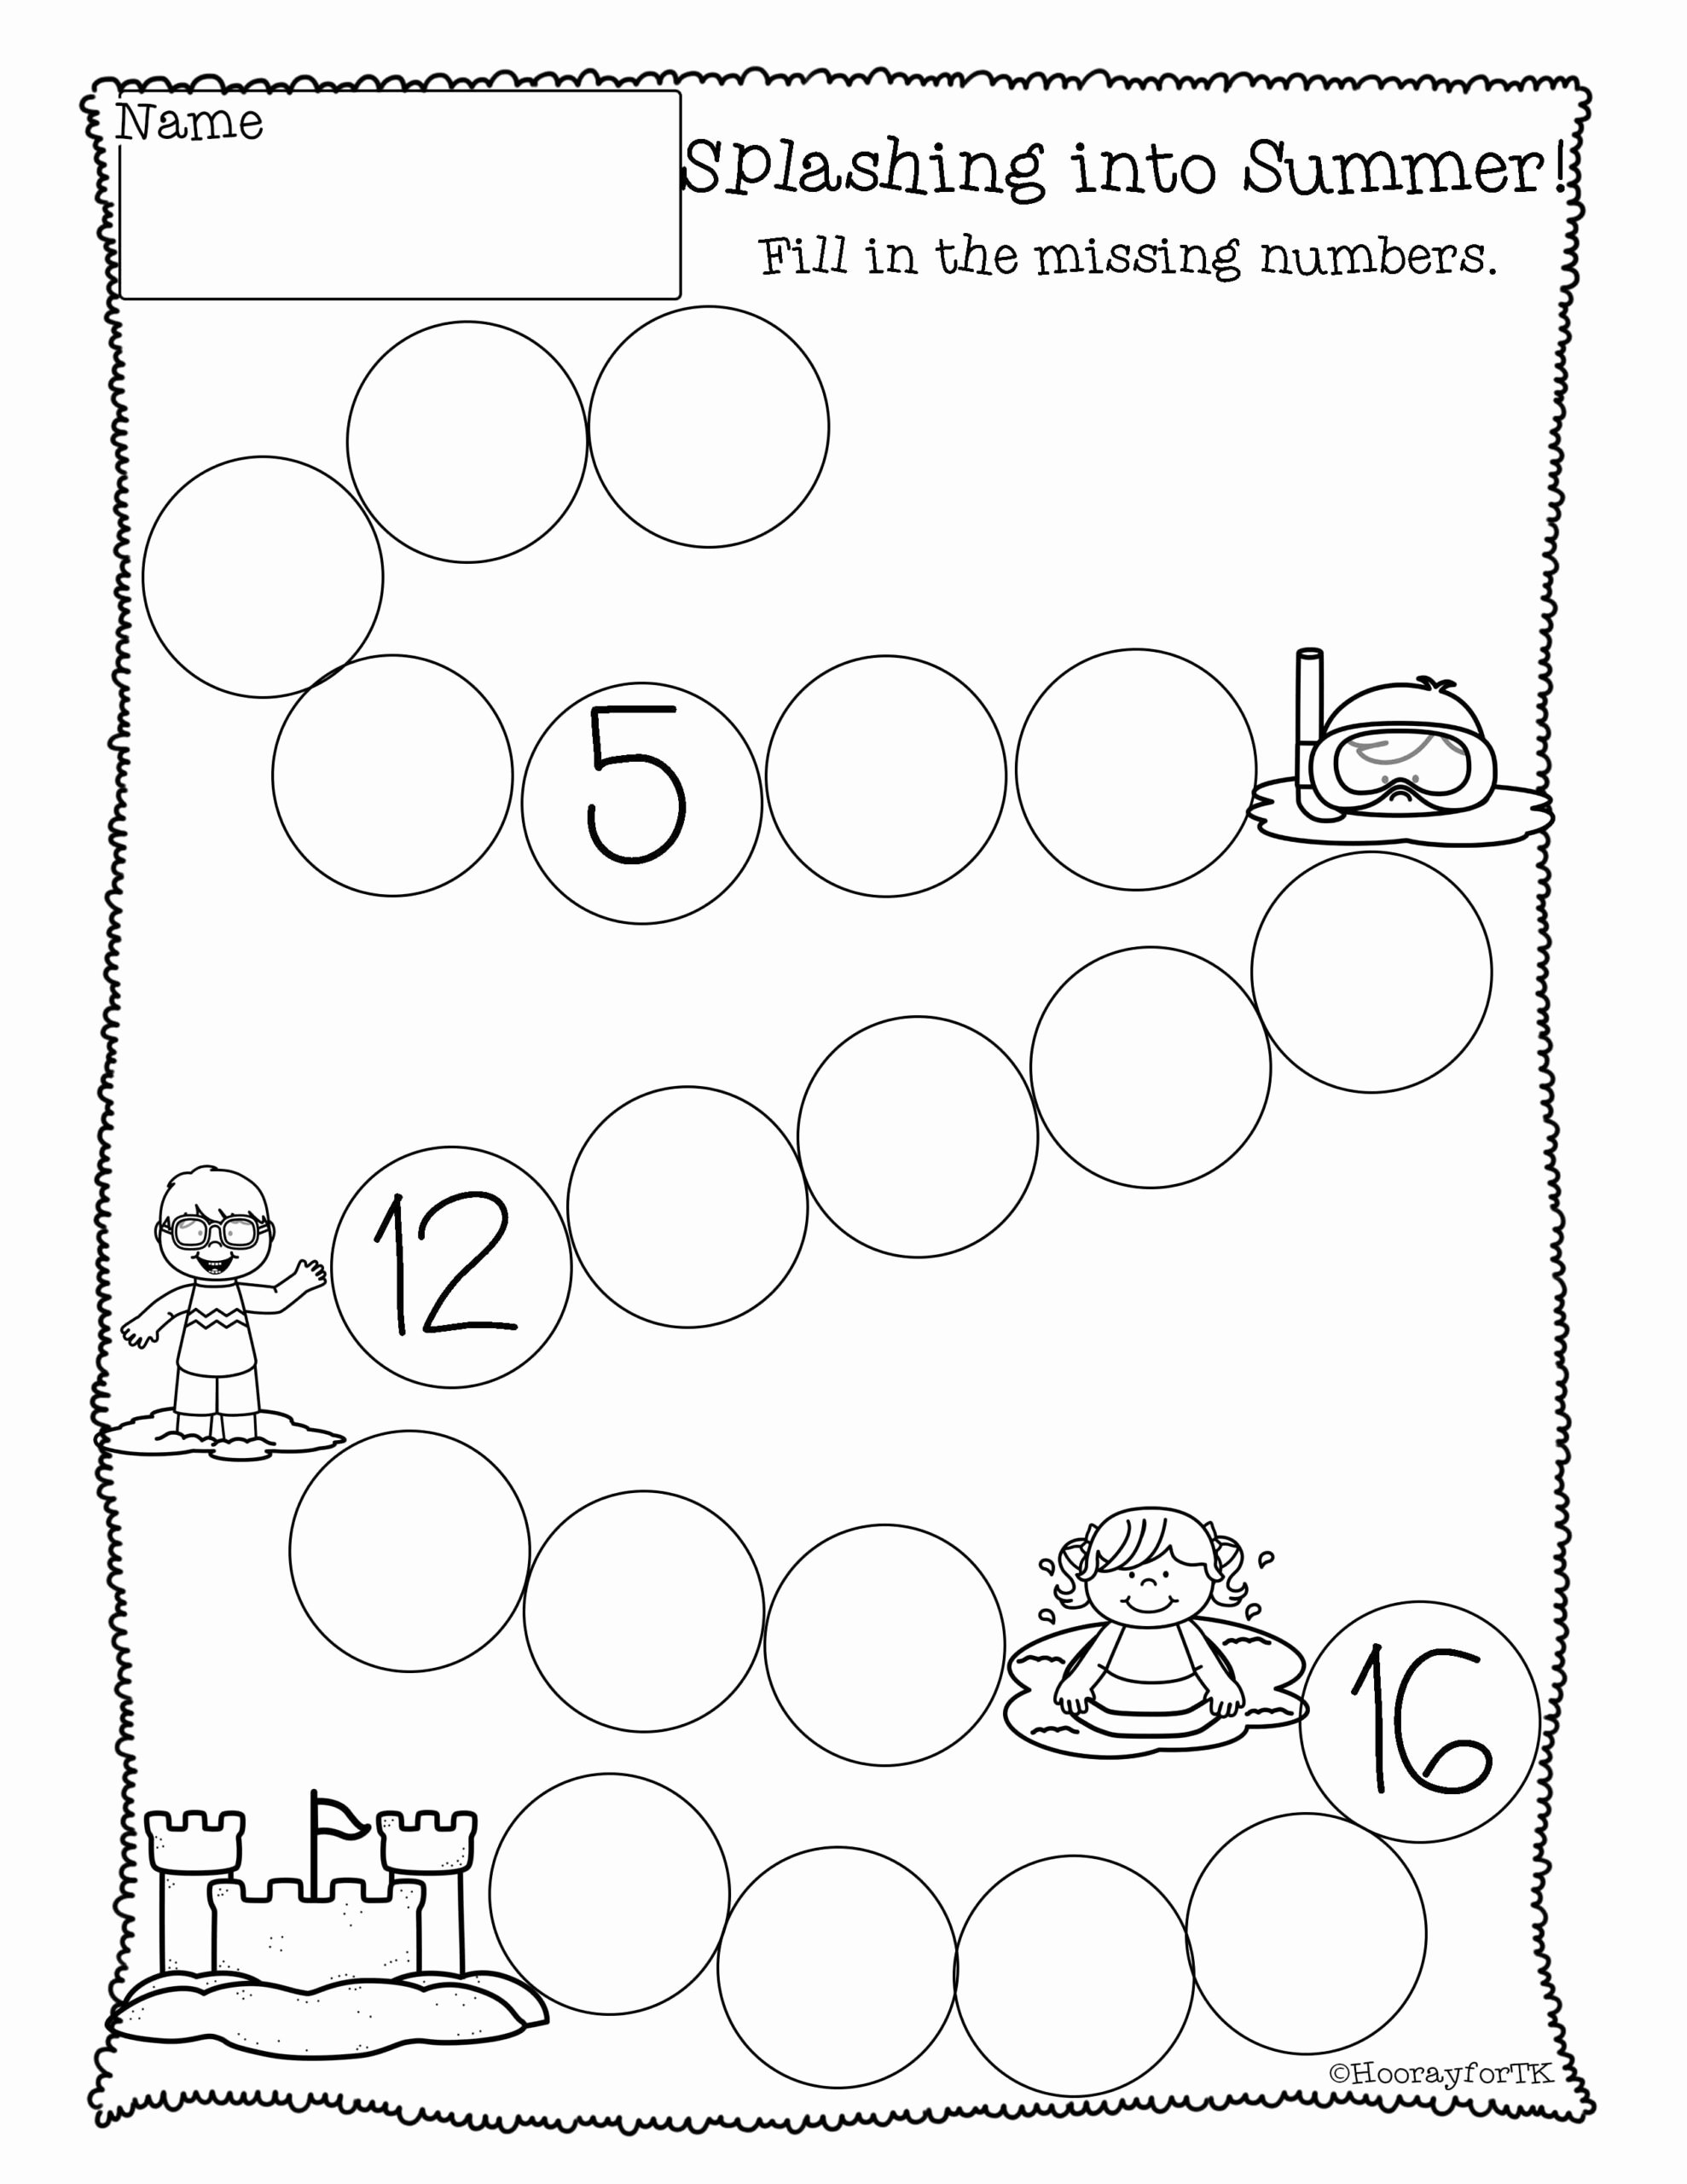 hight resolution of Mathematics Worksheets for Preschoolers Awesome Worksheets Math Activities  for Kindergarten Worksheets – Printable Worksheets for Kids